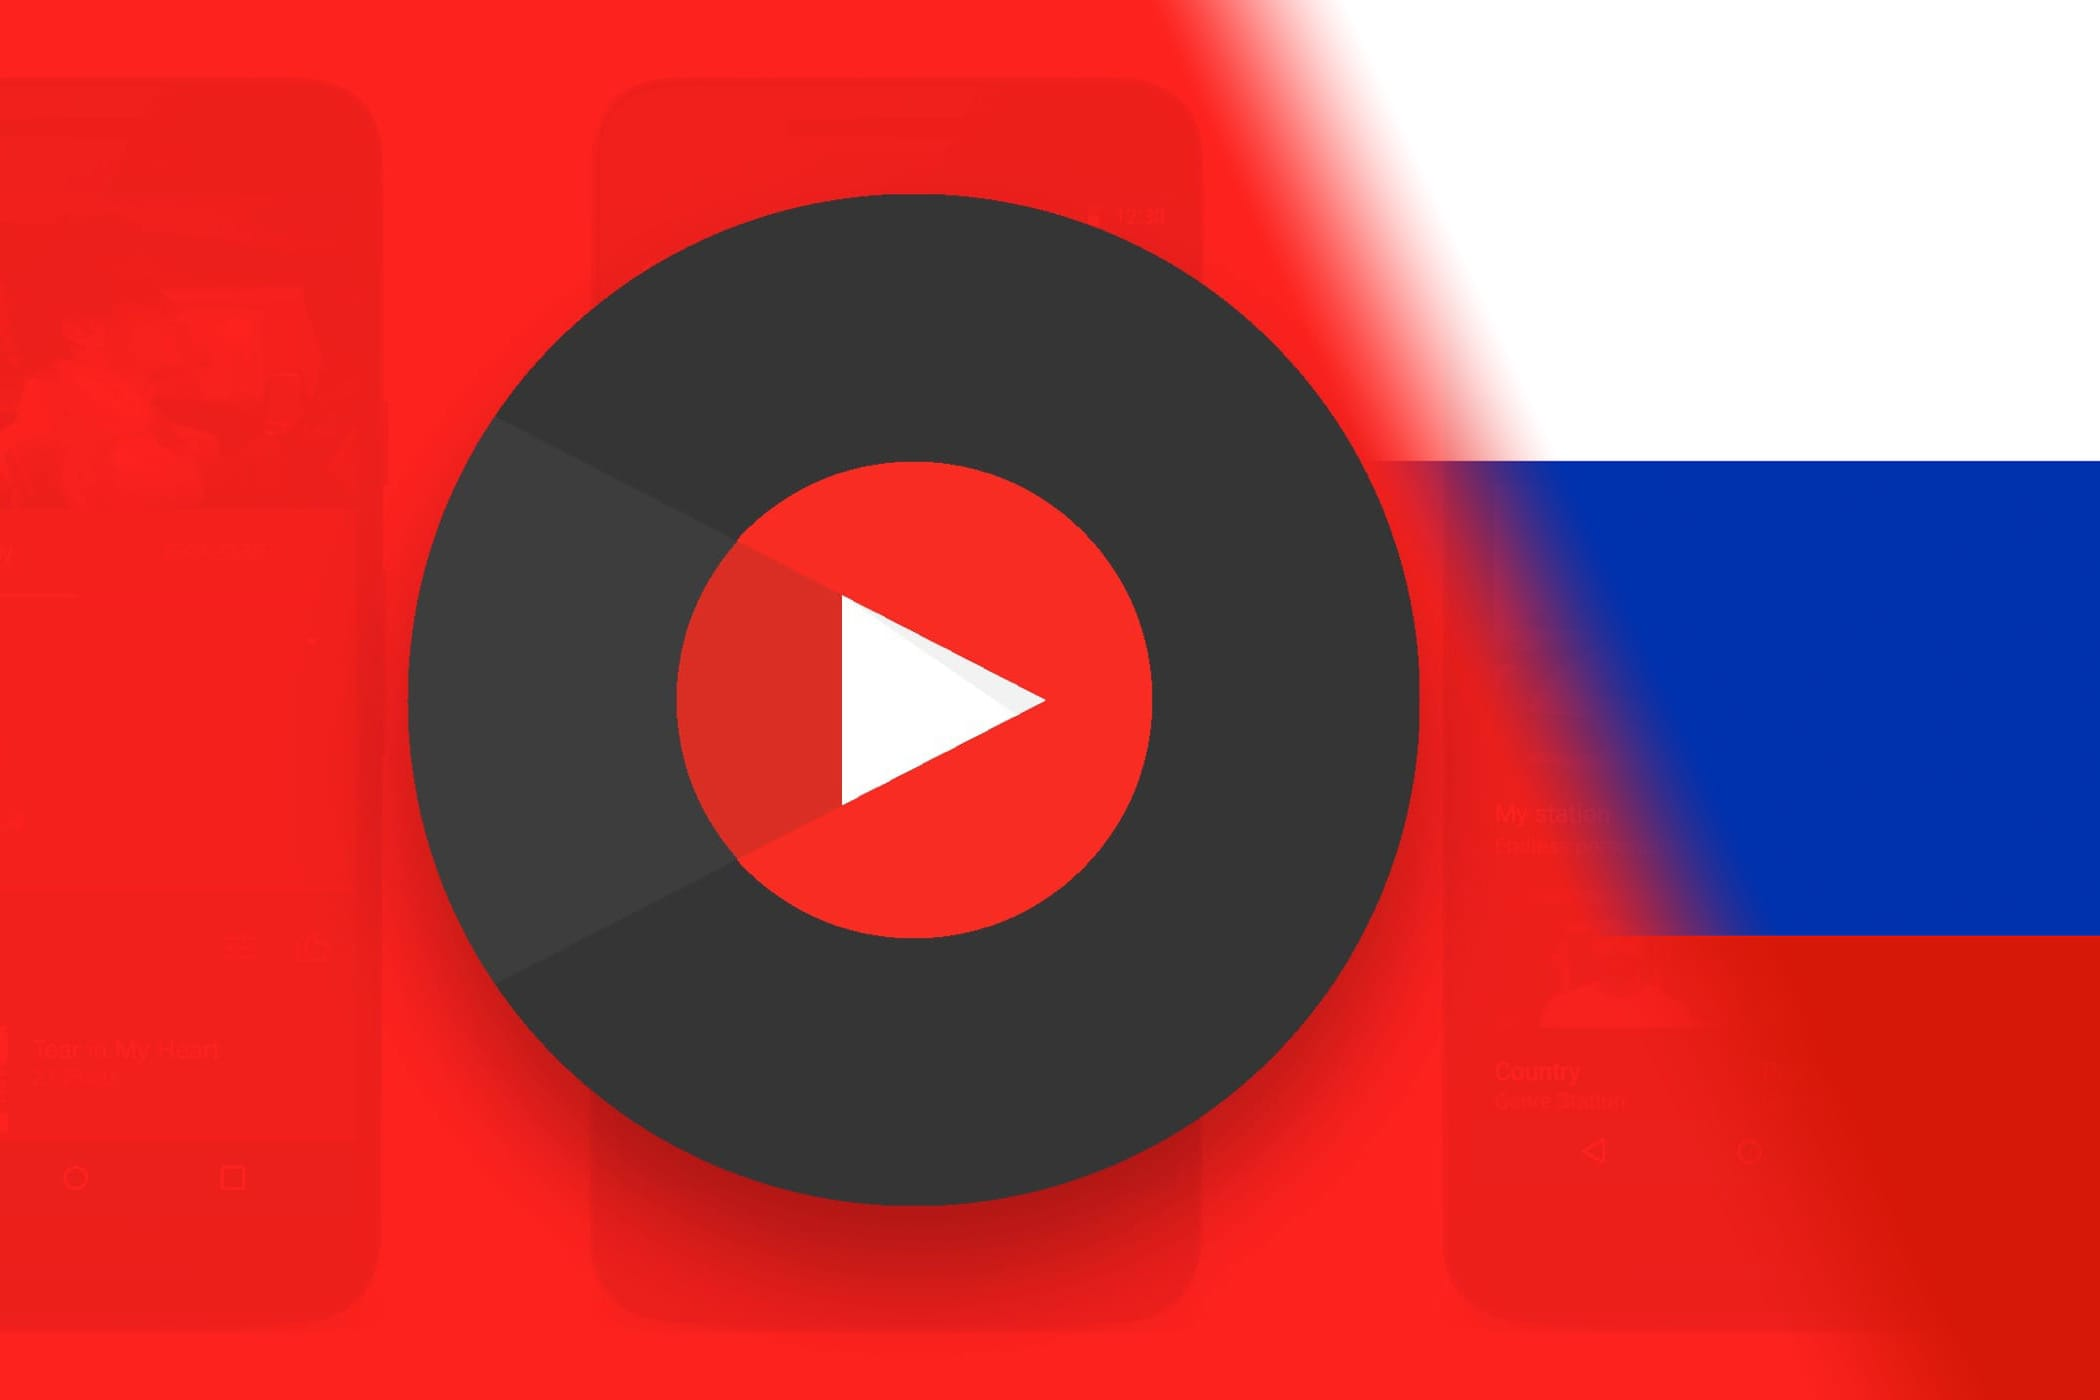 Google объявила о запуске YouTube Premium и YouTube Music в России